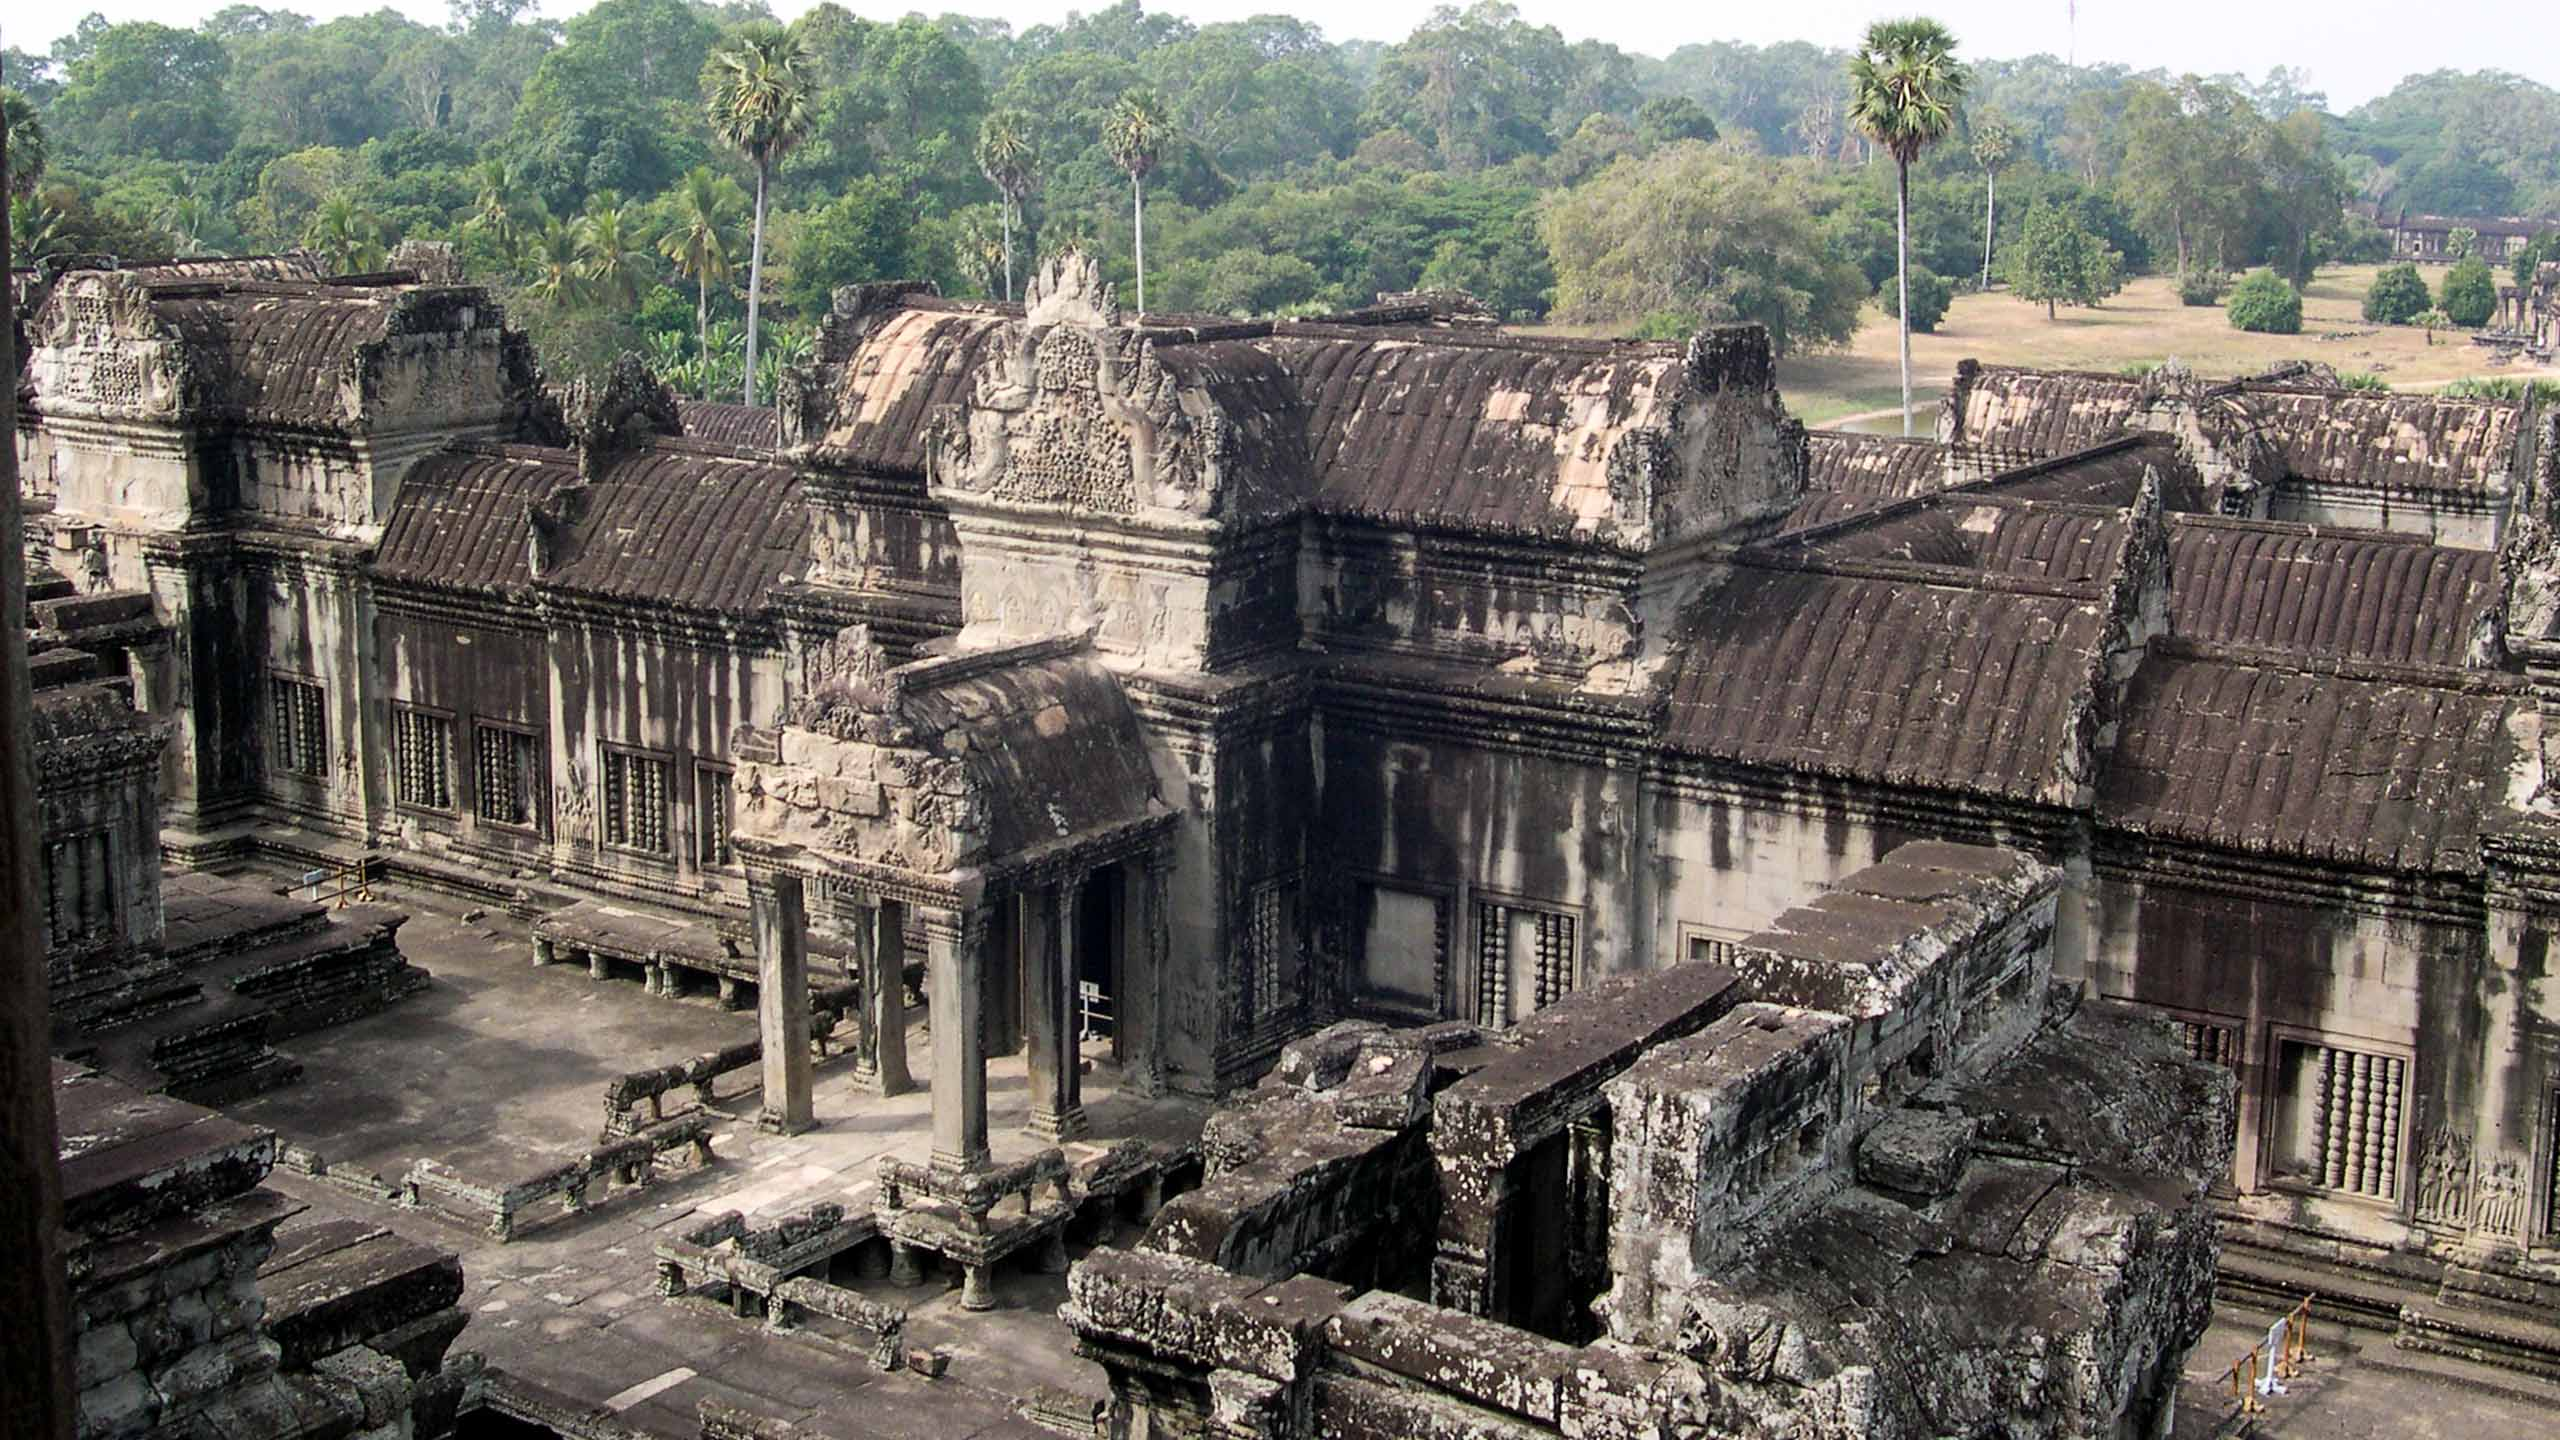 Aerial view of Cambodia ruins